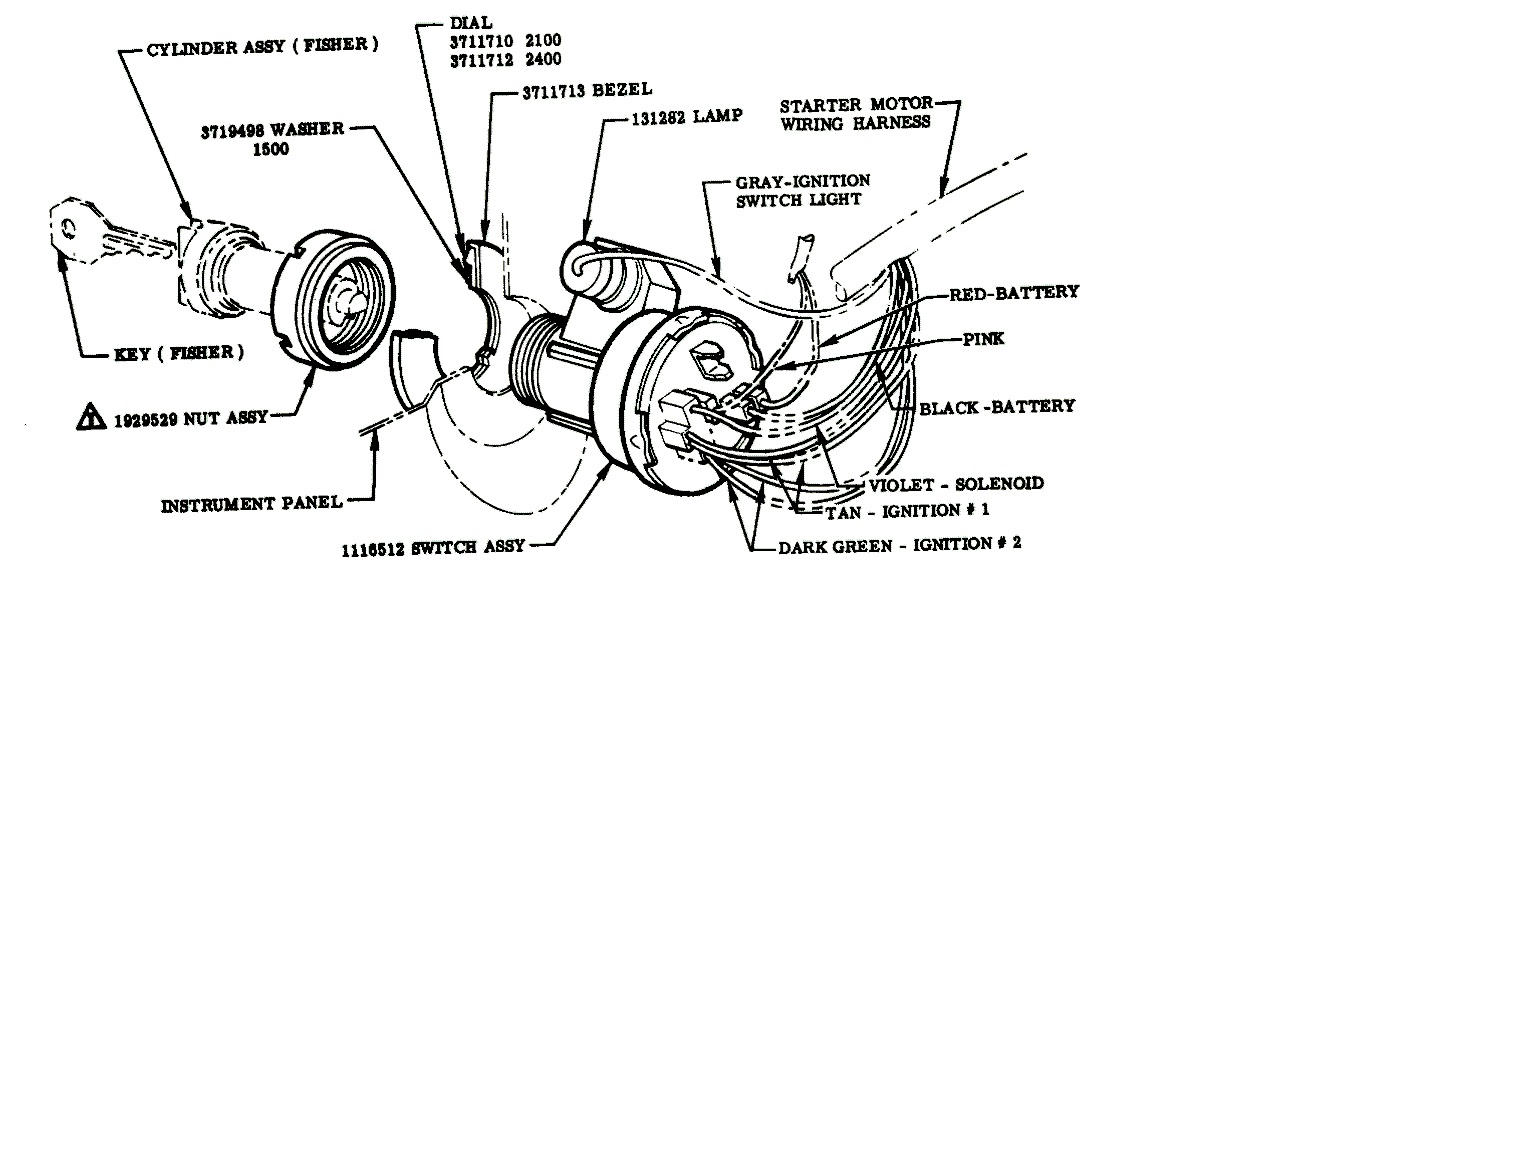 1970 Chevy C10 Hei Wiring Diagram Library Ford Coil Distributor Ignition 1971 F100